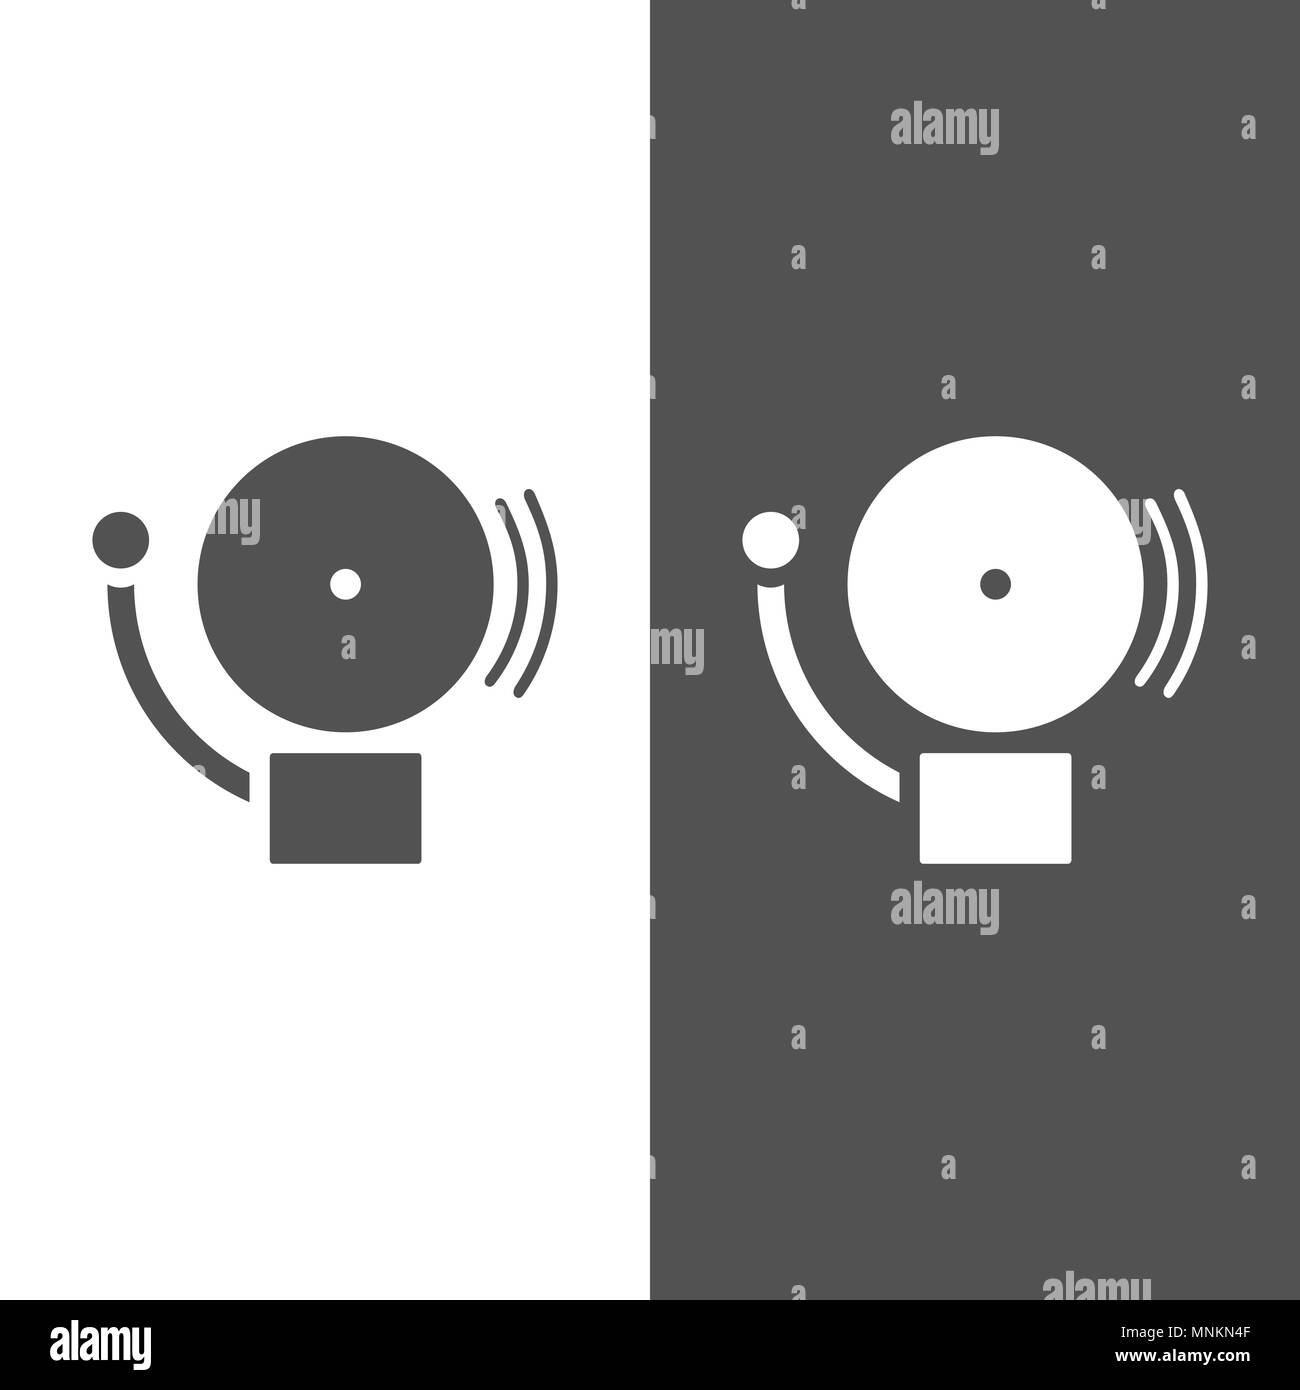 Alarm icon on a dark and white background. Vector illustration - Stock Image